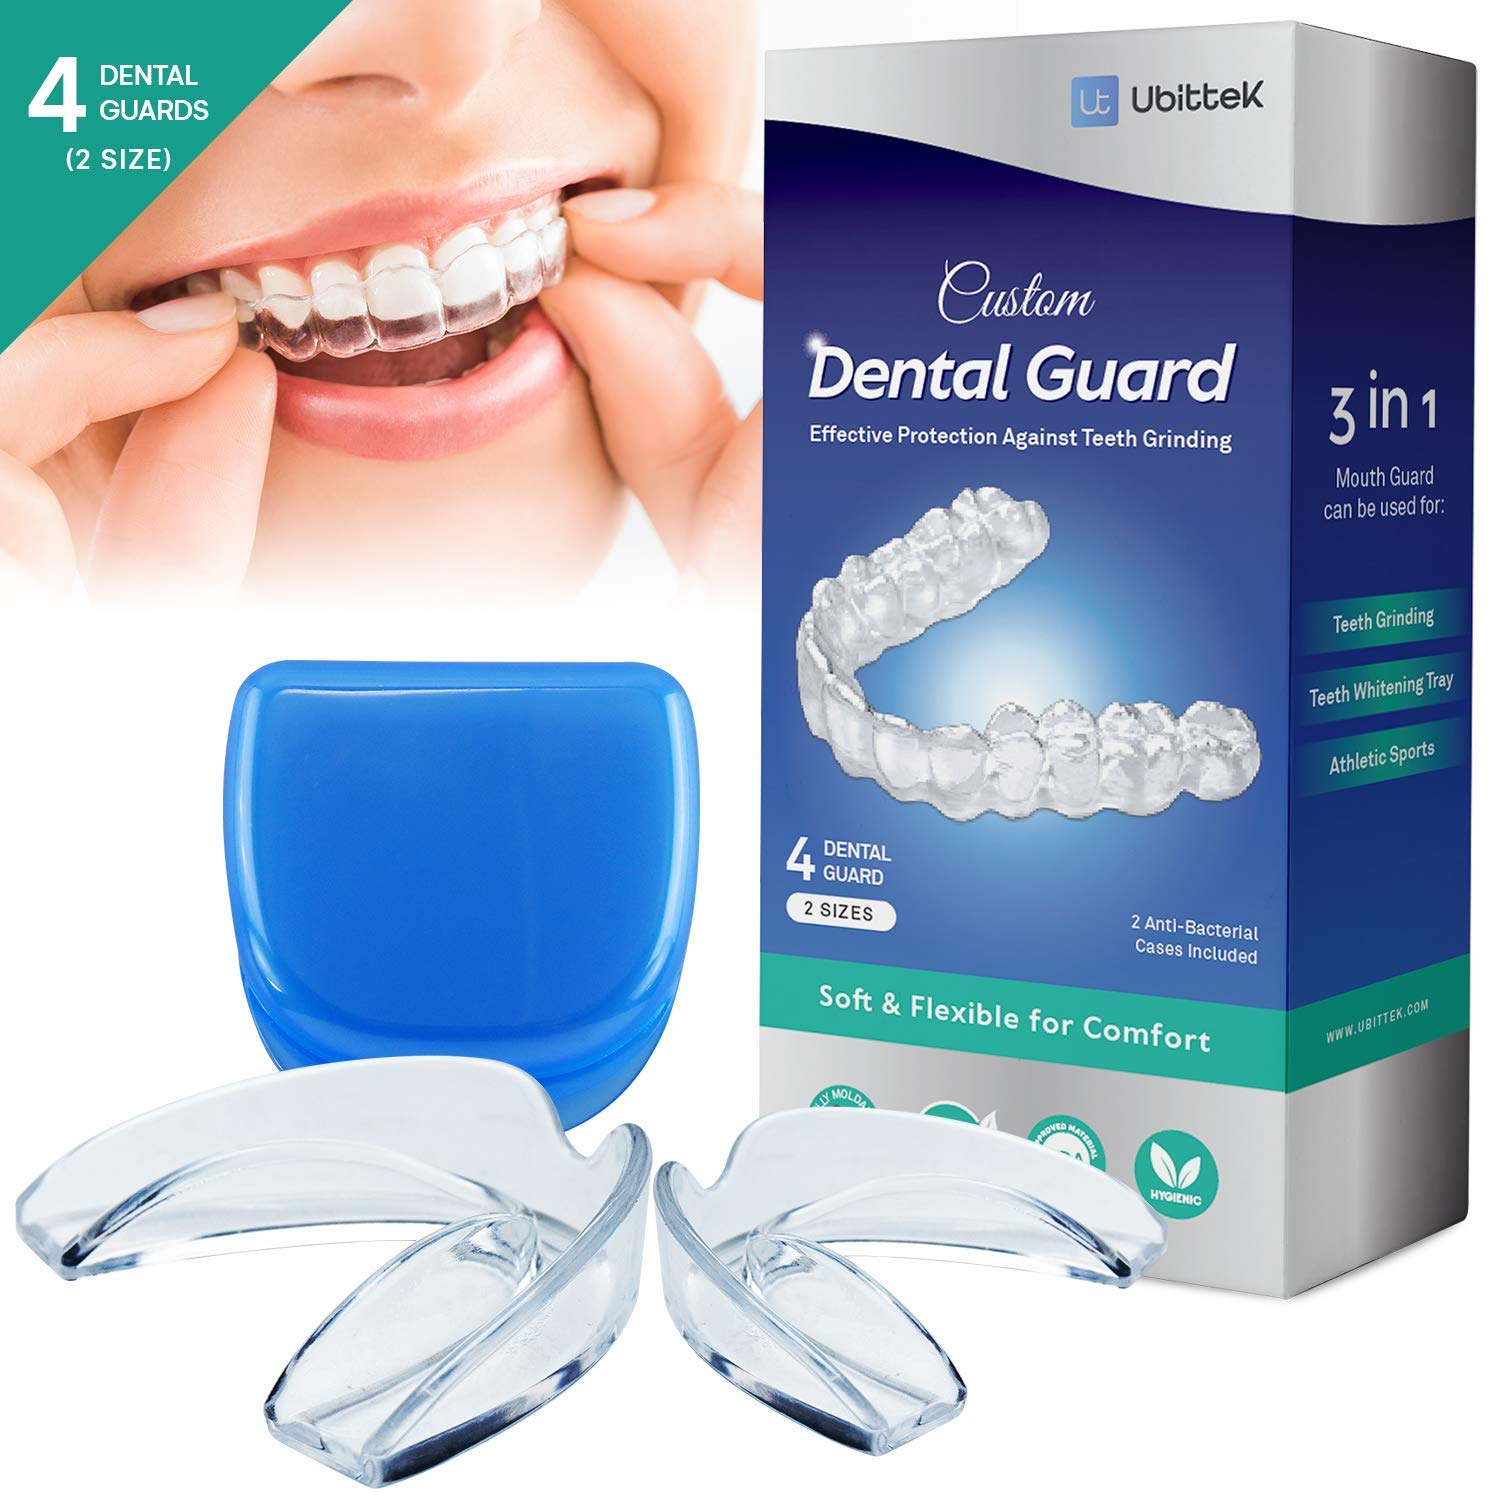 Ubittek Teeth Grinding Moldable Custom Dental Night Guards - 2-Size, 4 Pieces Mouth Guards by Ubittek